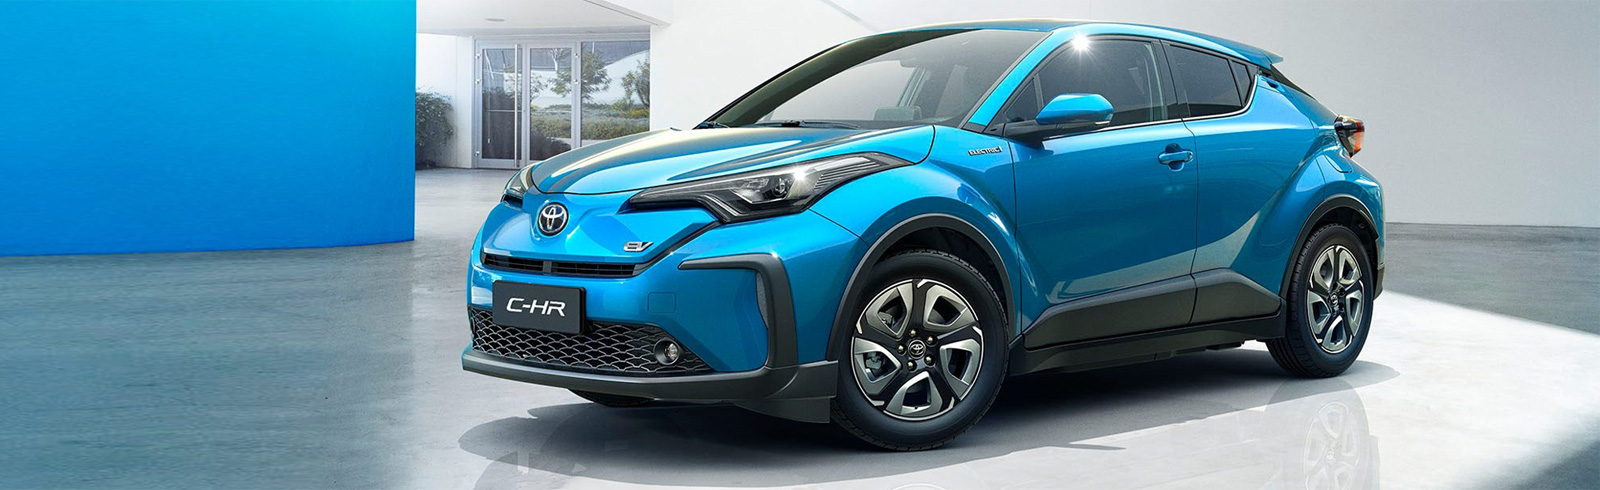 Toyota showcases the C-HR and IZOA EVs together with the Mirai featuring a new fuel cell